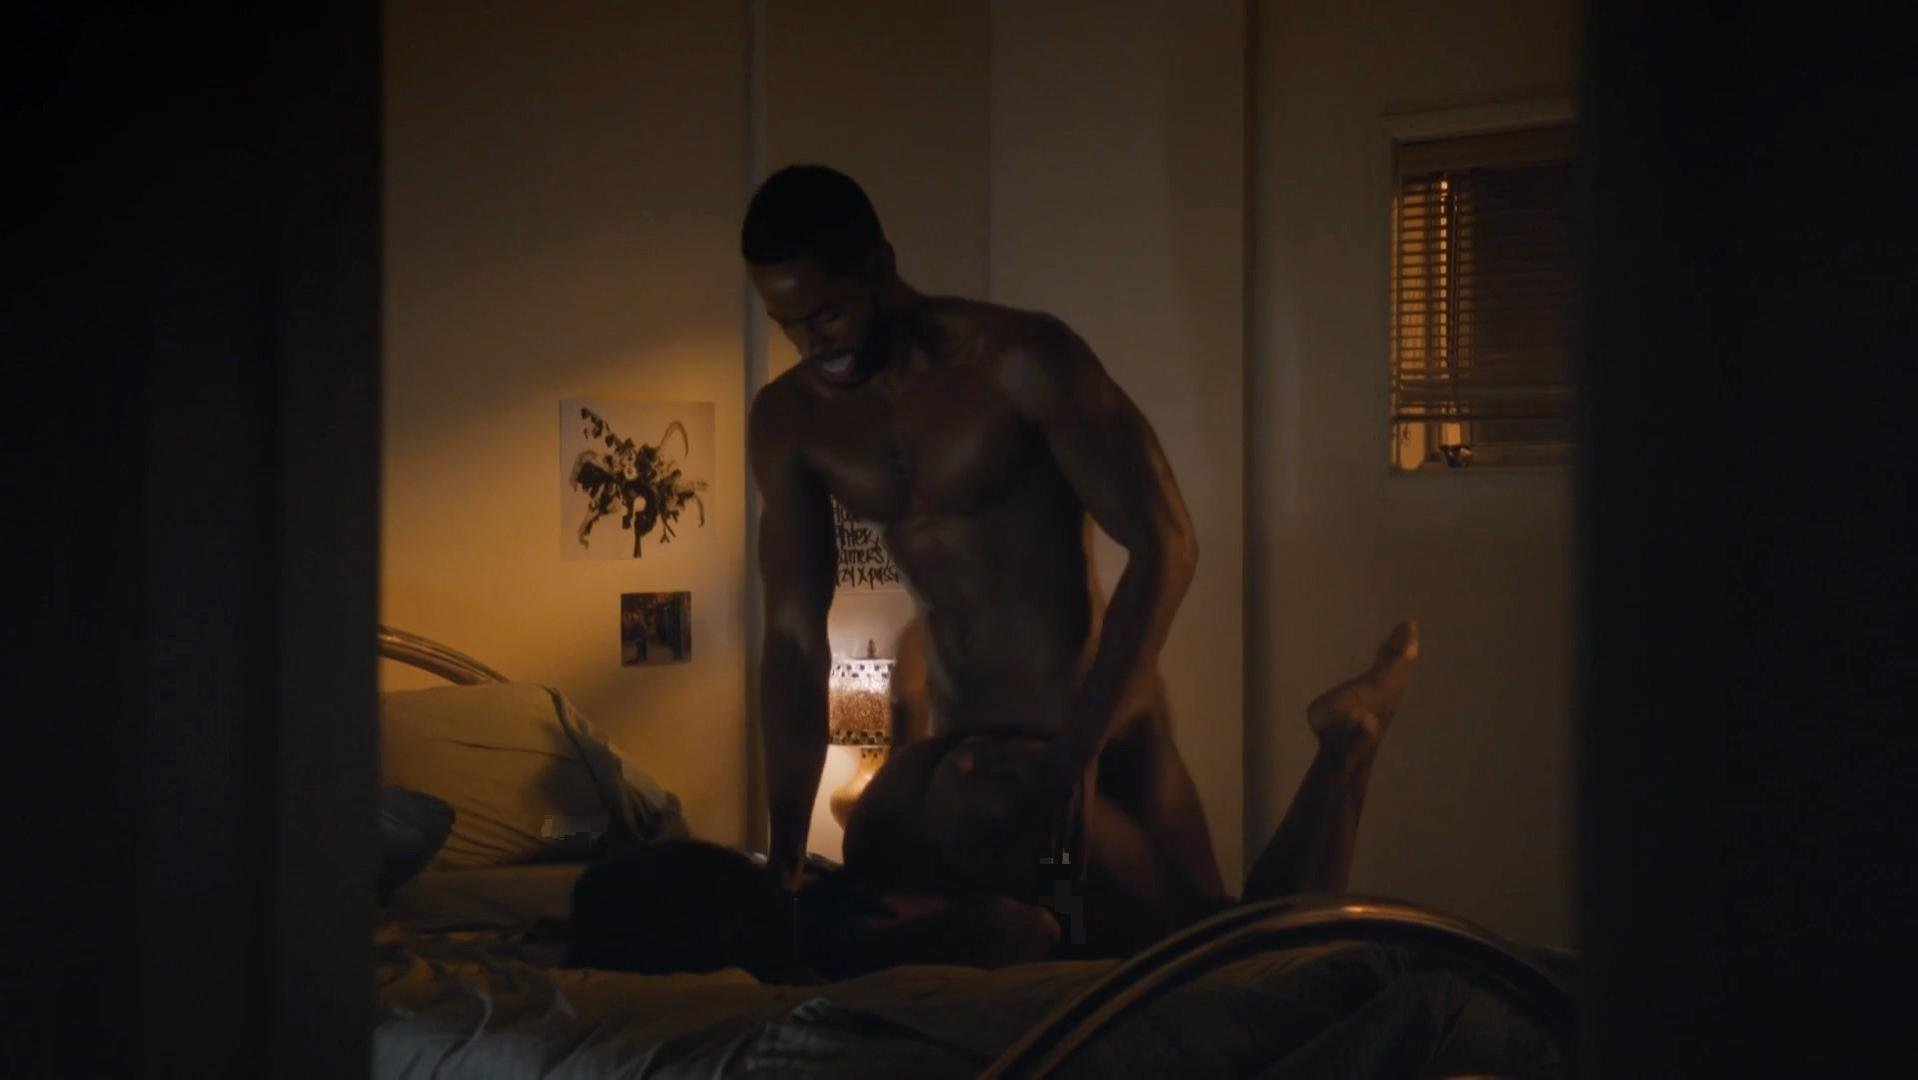 Dominique Perry nude, Rayven Mervin nude - Insecure s01e08 (2016)